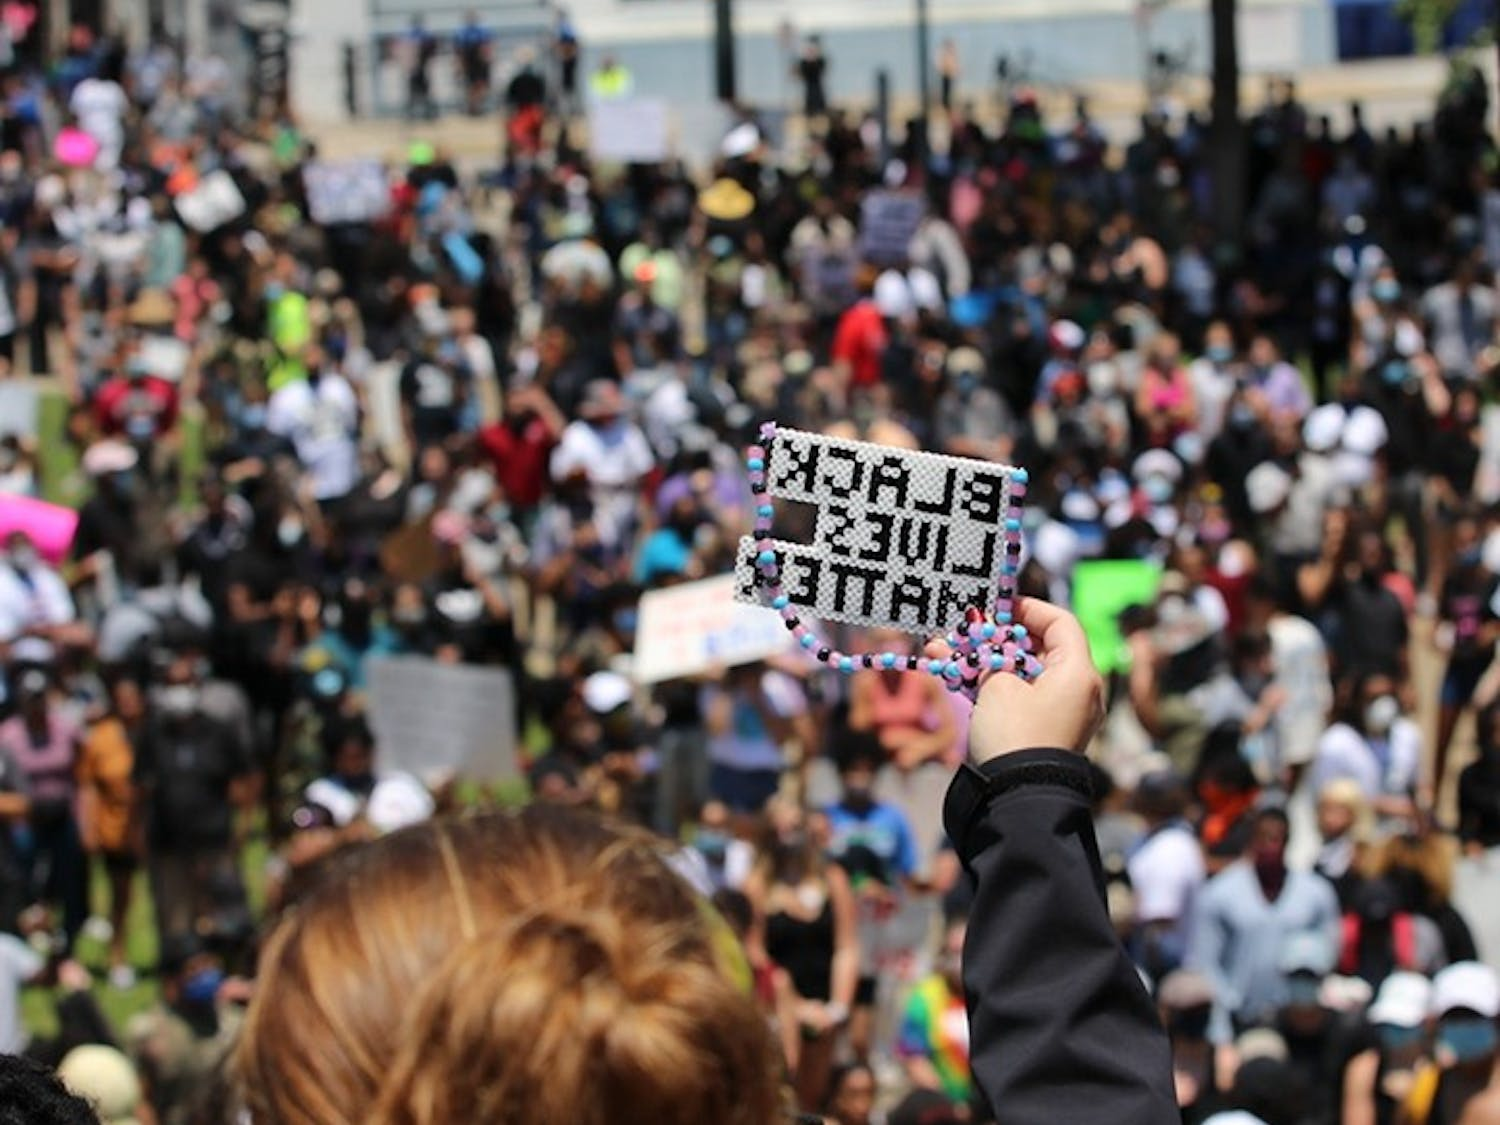 """A protestor holds a handmade Perler bead design that reads 'BLACK LIVES MATTER.' Protestors filled the steps of the capital and the grounds below chanting """"No justice, no peace."""""""